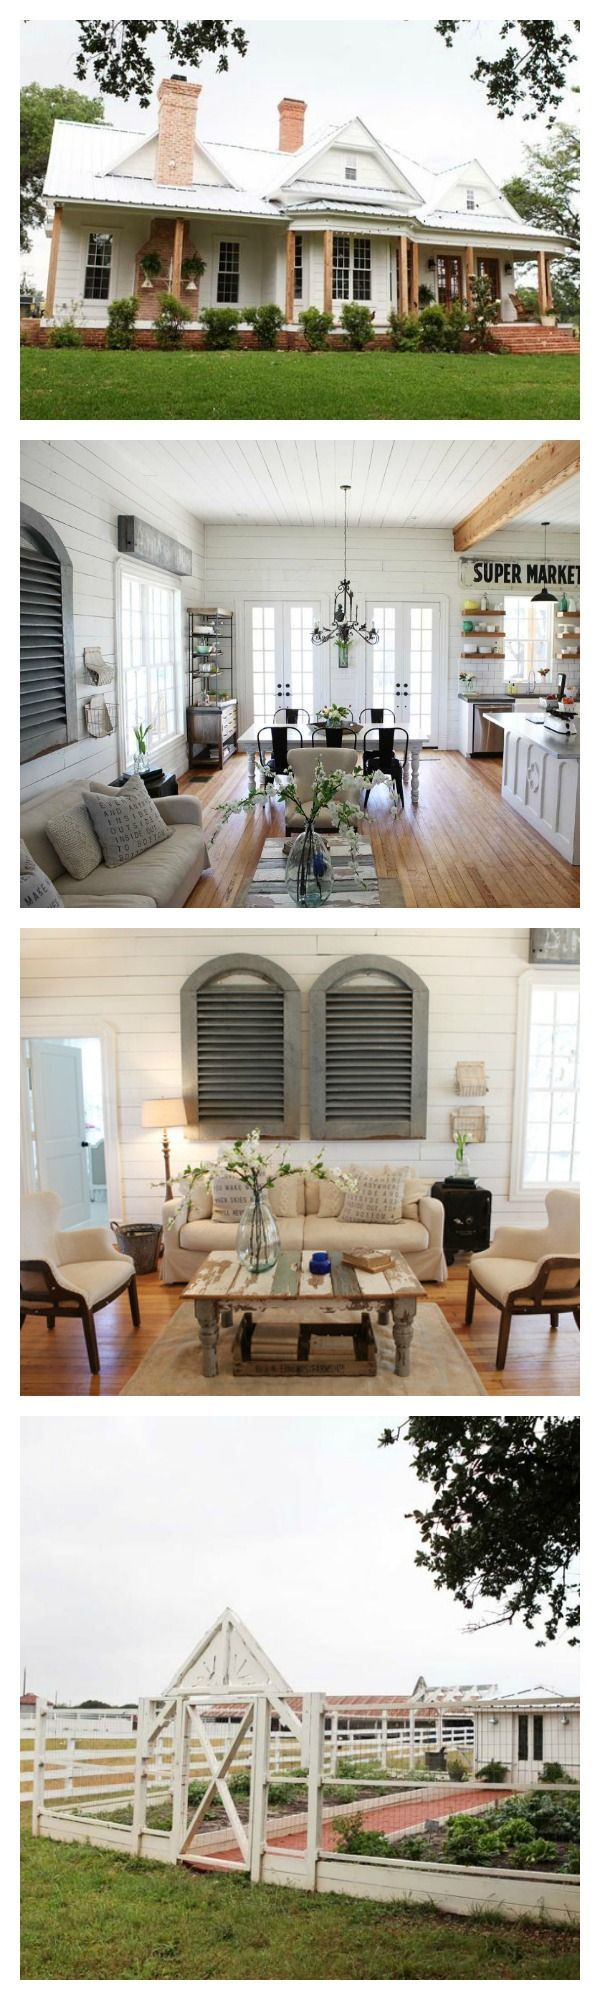 Best 25 joanna gaines farmhouse ideas on pinterest for Joanna gaines home designs